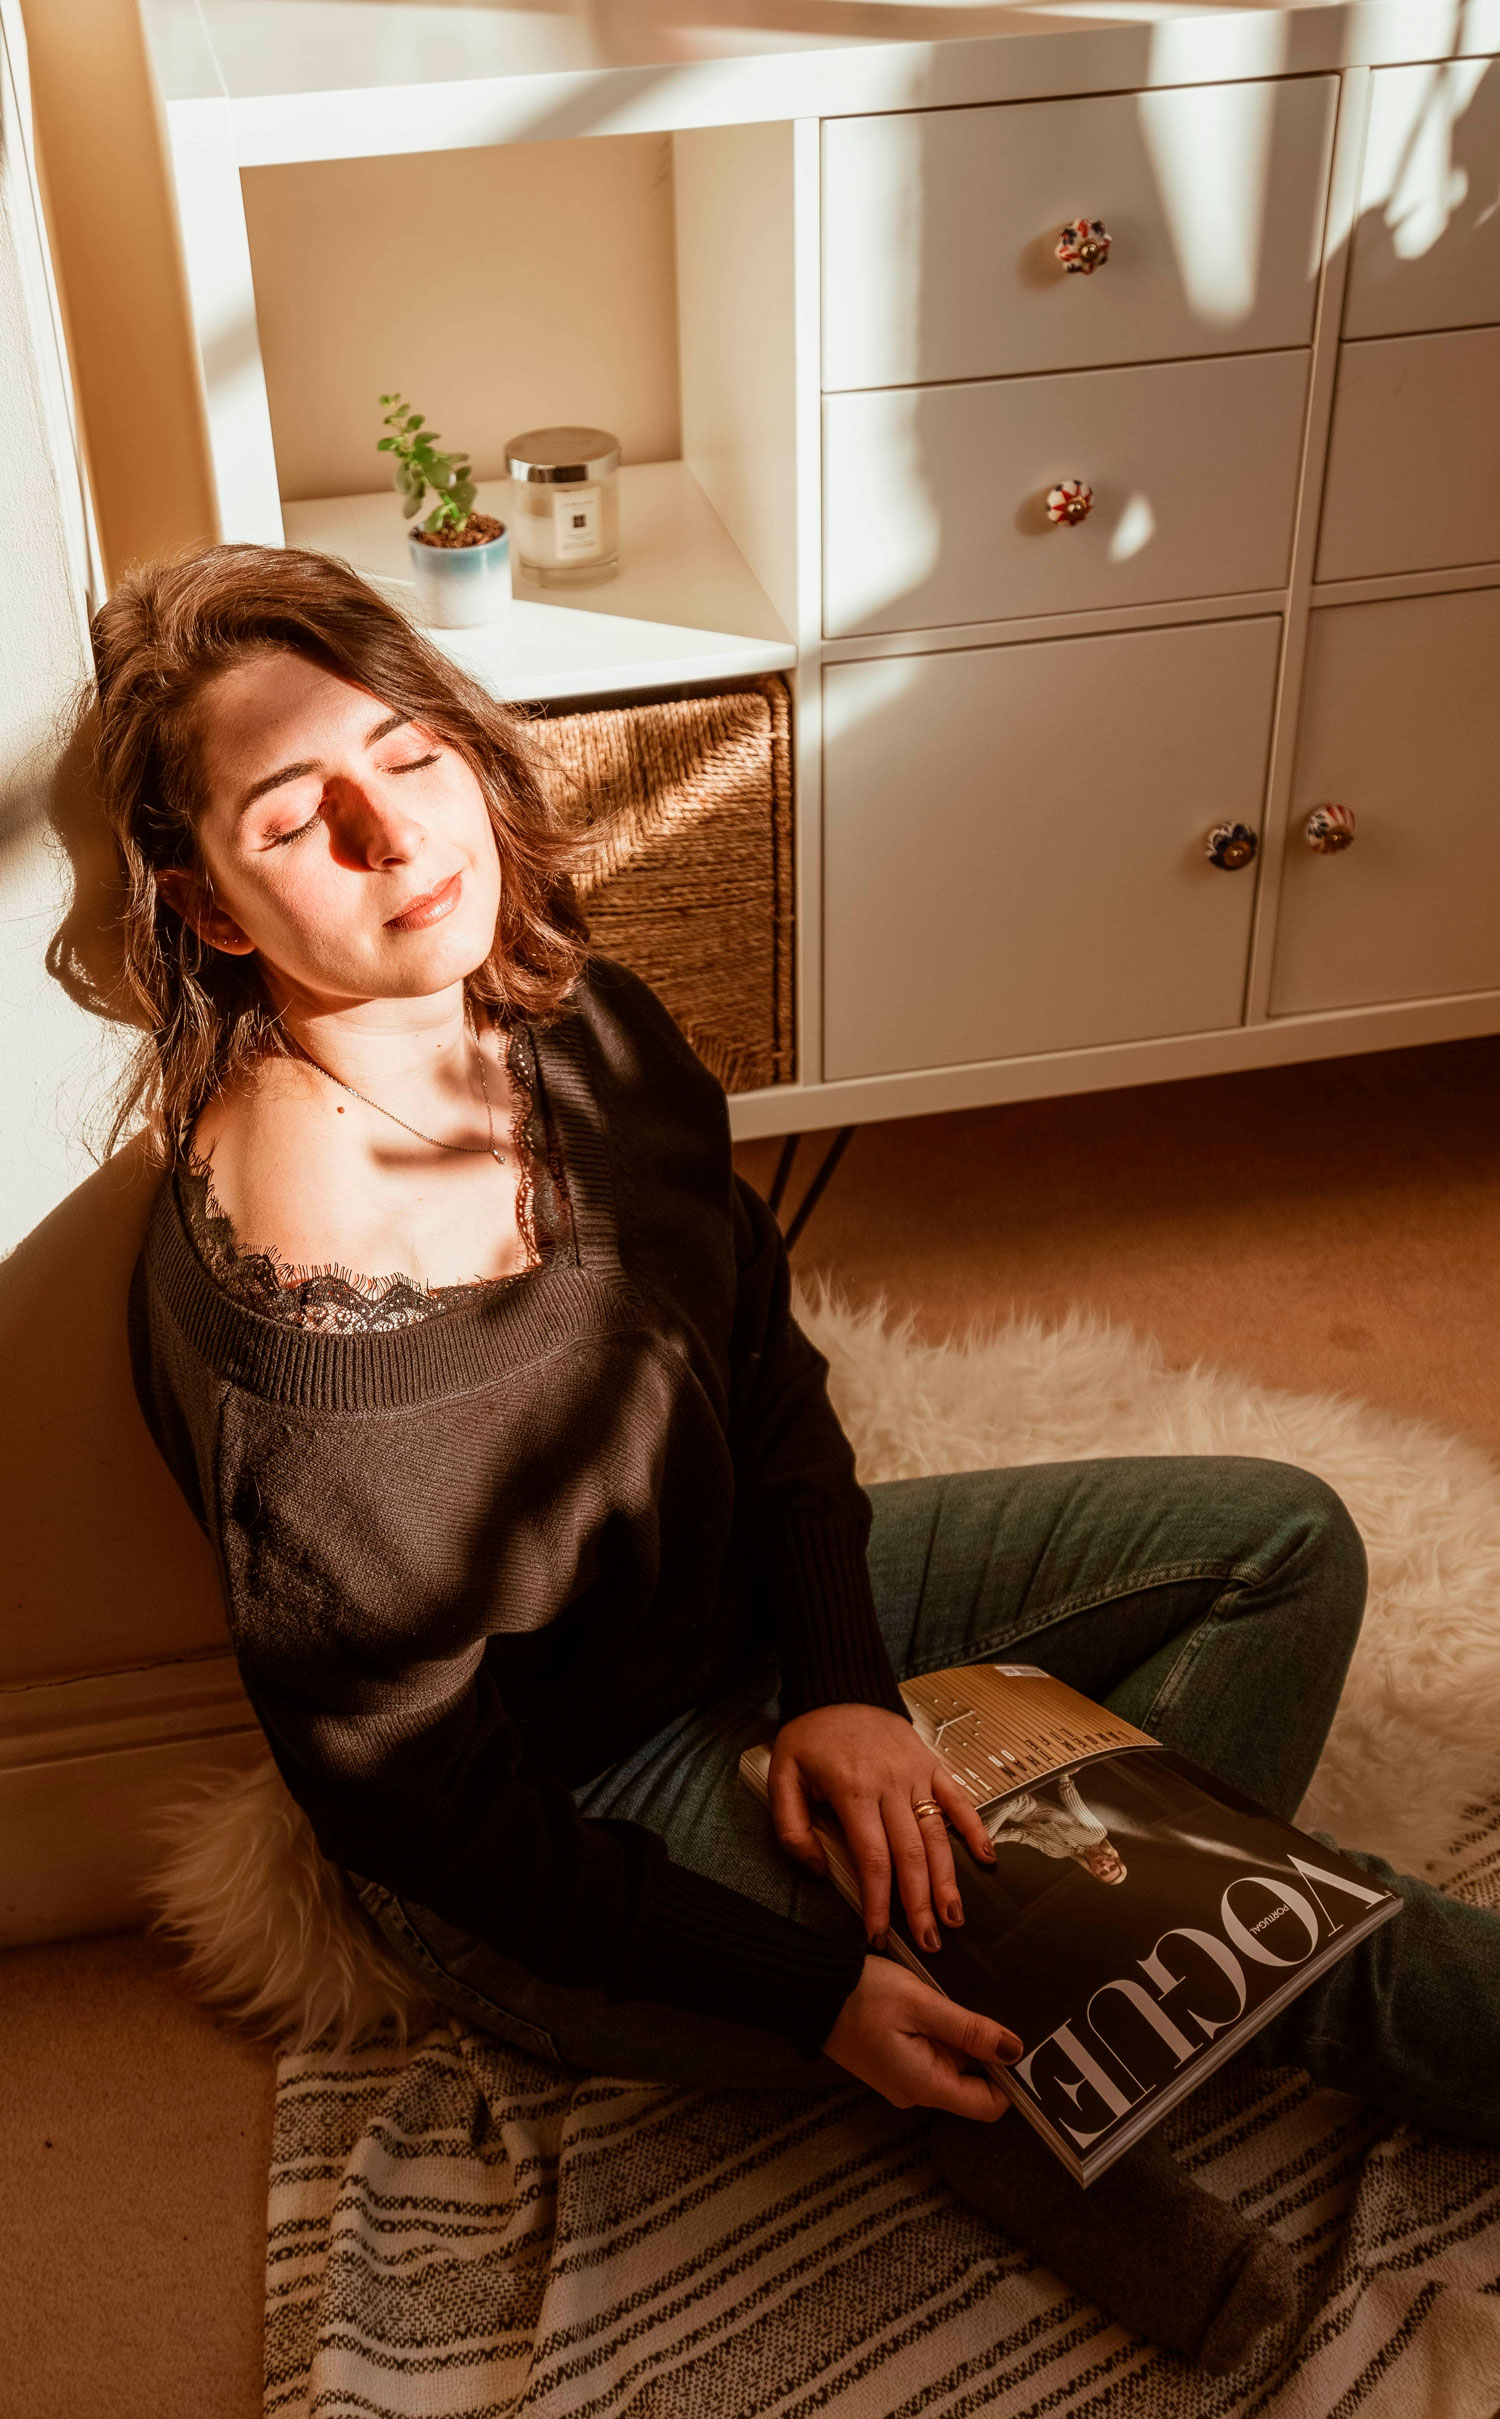 Reading in the corner where catching the light: 5 healthy habits I'm introducing in my routine by Marisa Oliveira from Arara Pintada